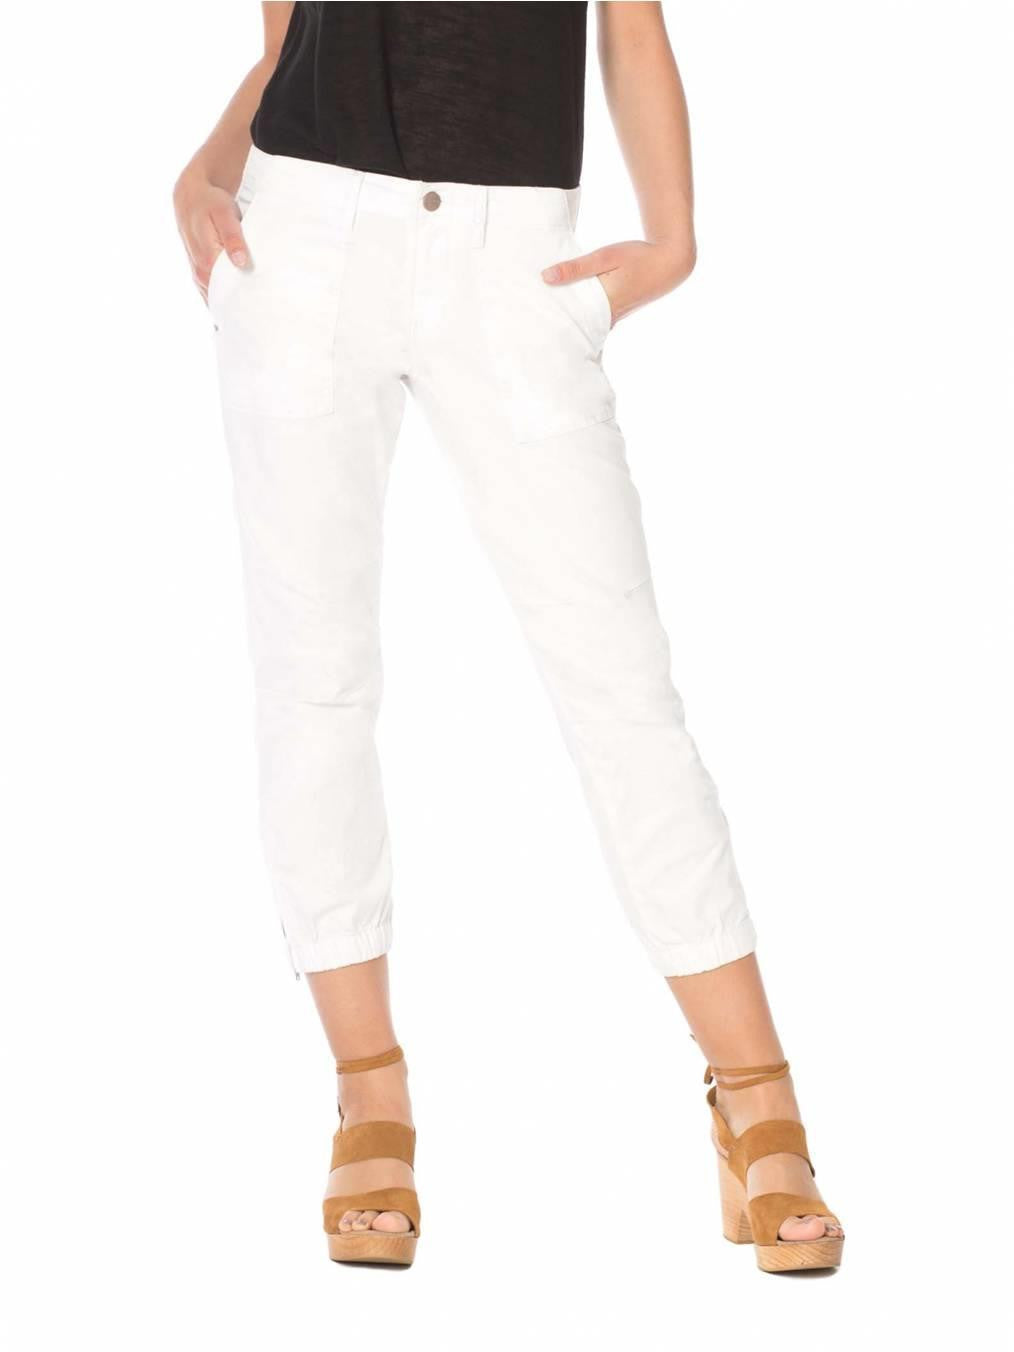 SANCTUARY PEACE TROOPER CROP PANT WITH ZIPPER IN WHITE